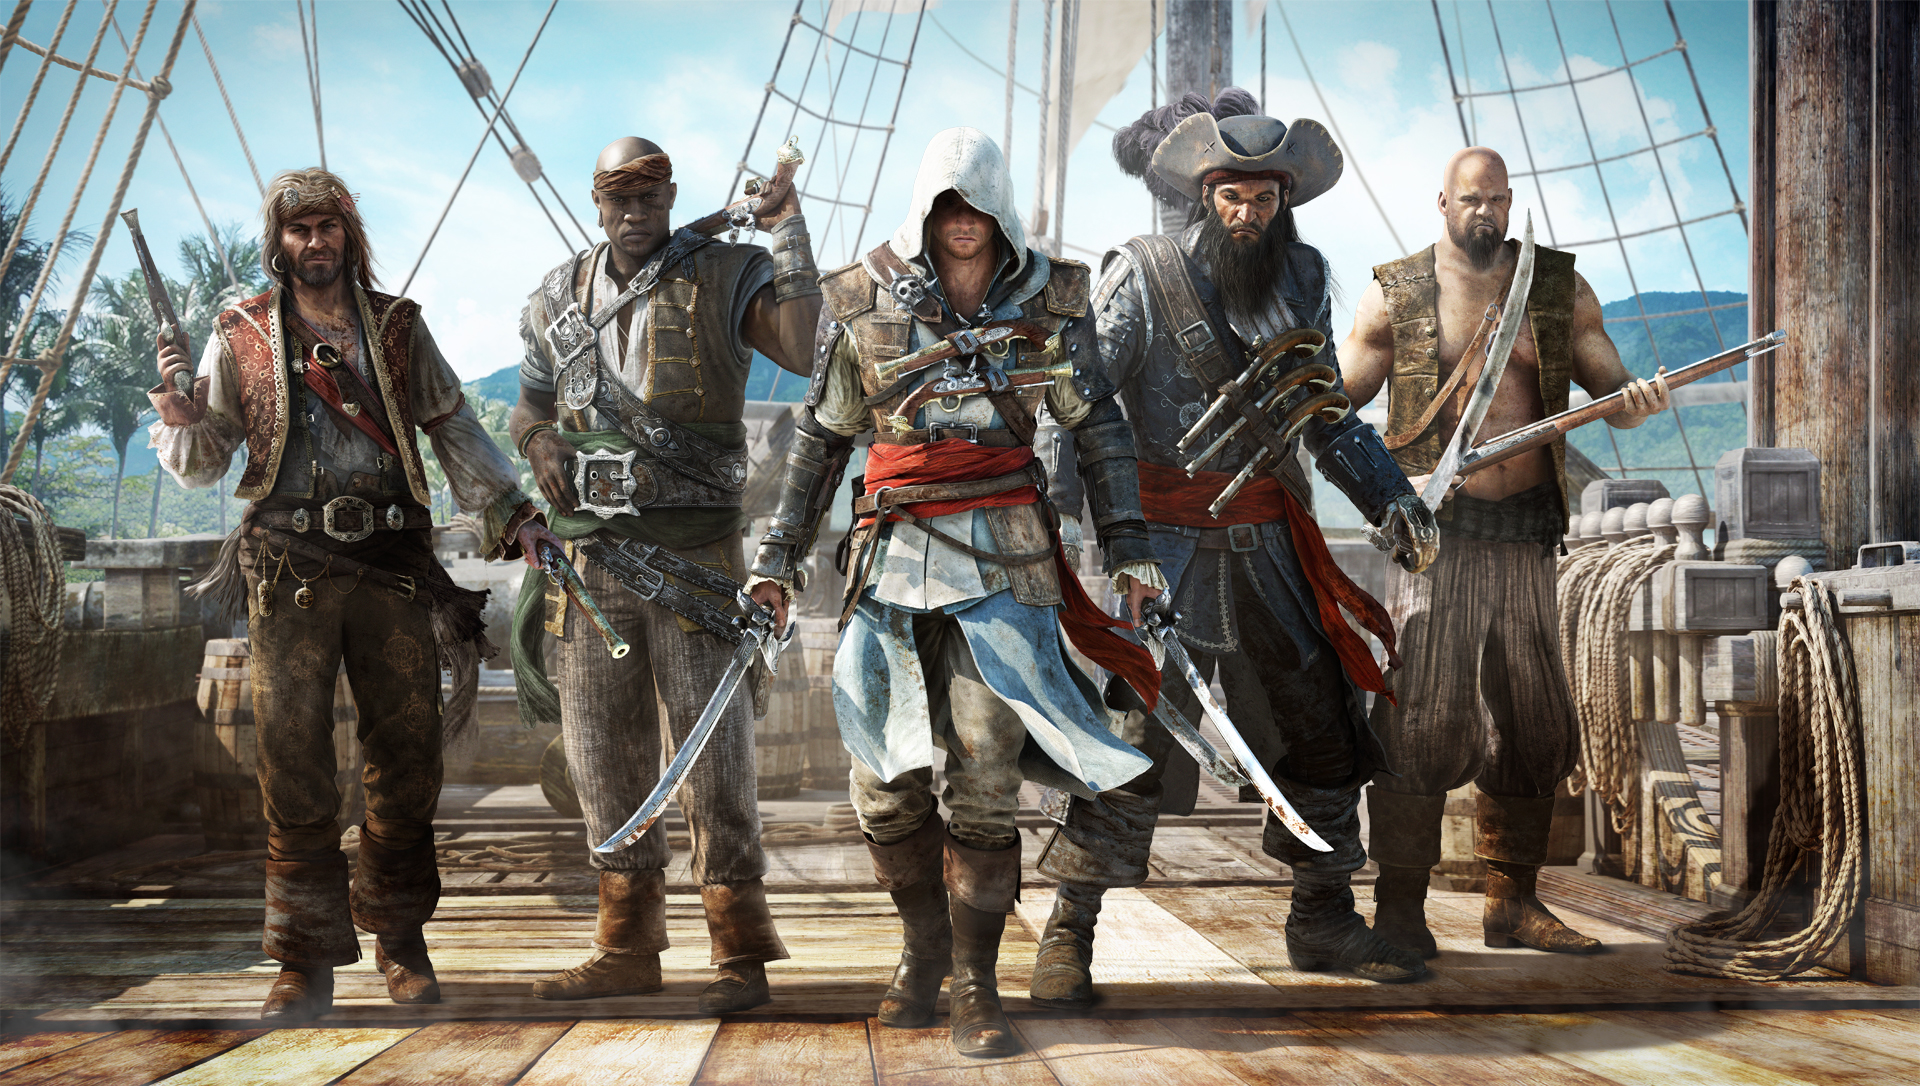 Assassin's Creed IV Black Flag: How Ubisoft Turned a Stealth